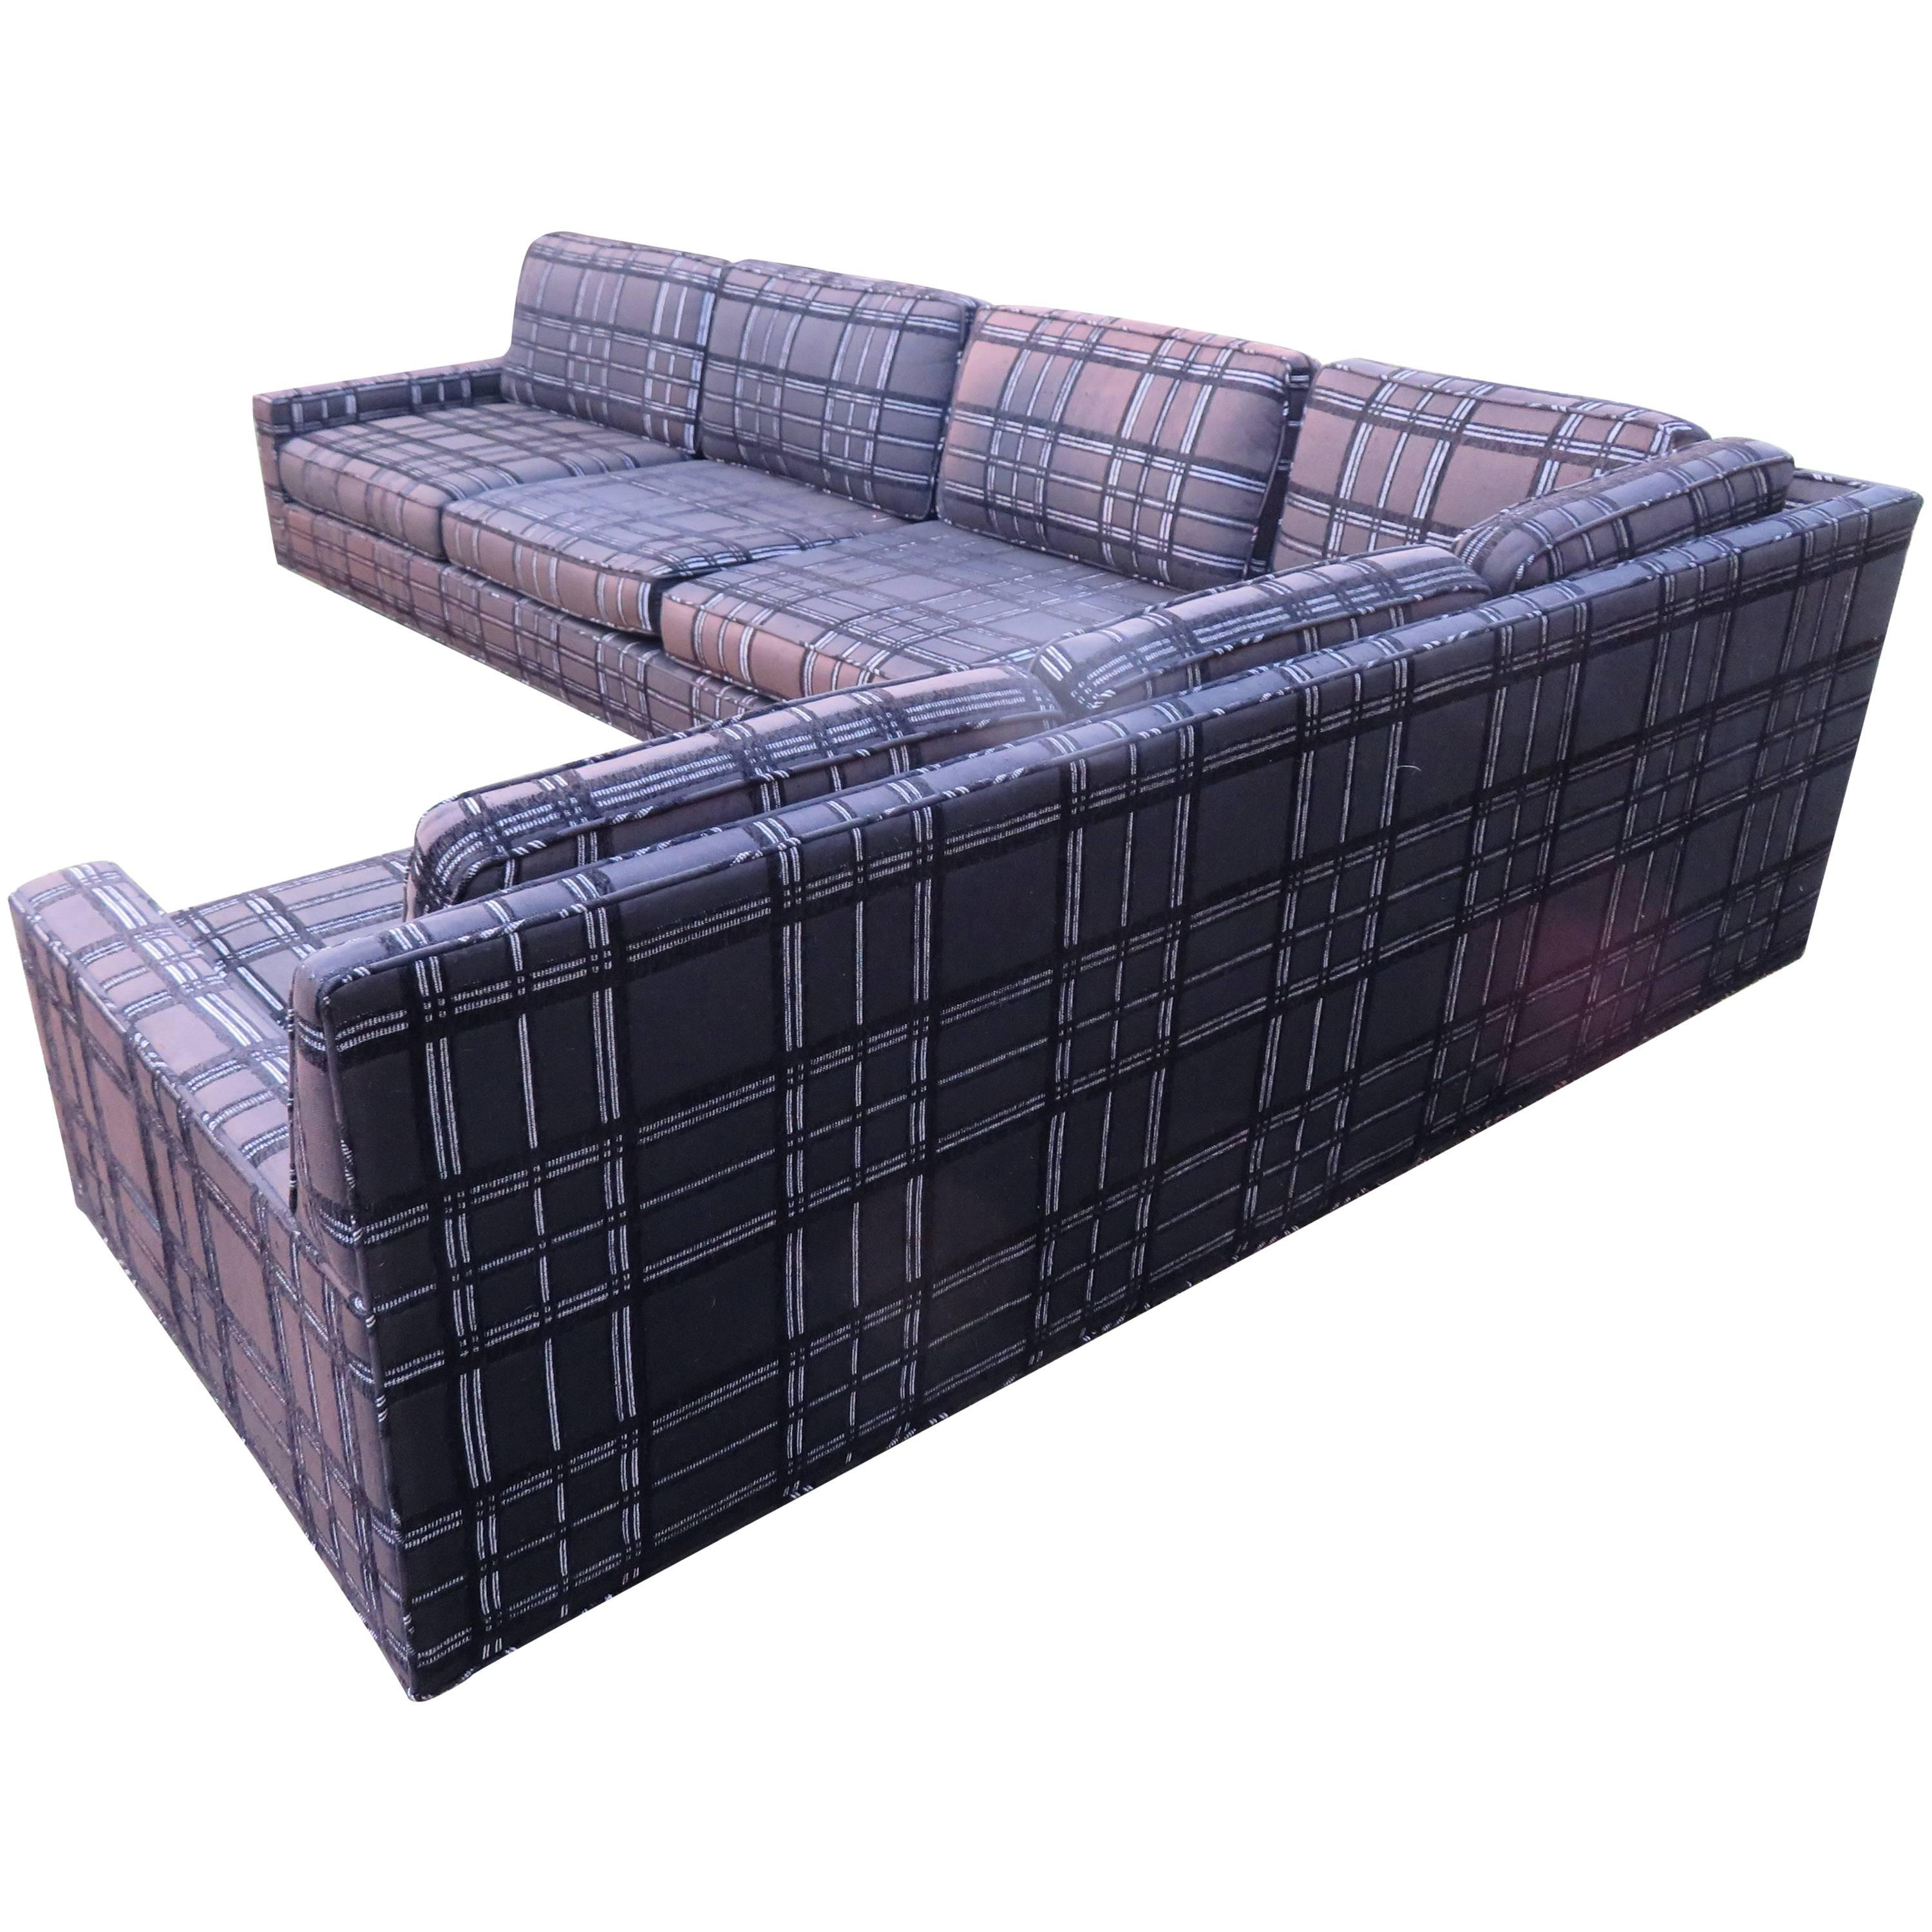 Stunning Signed Harvey Probber Two-Piece Sectional Sofa Mid-Century Modern